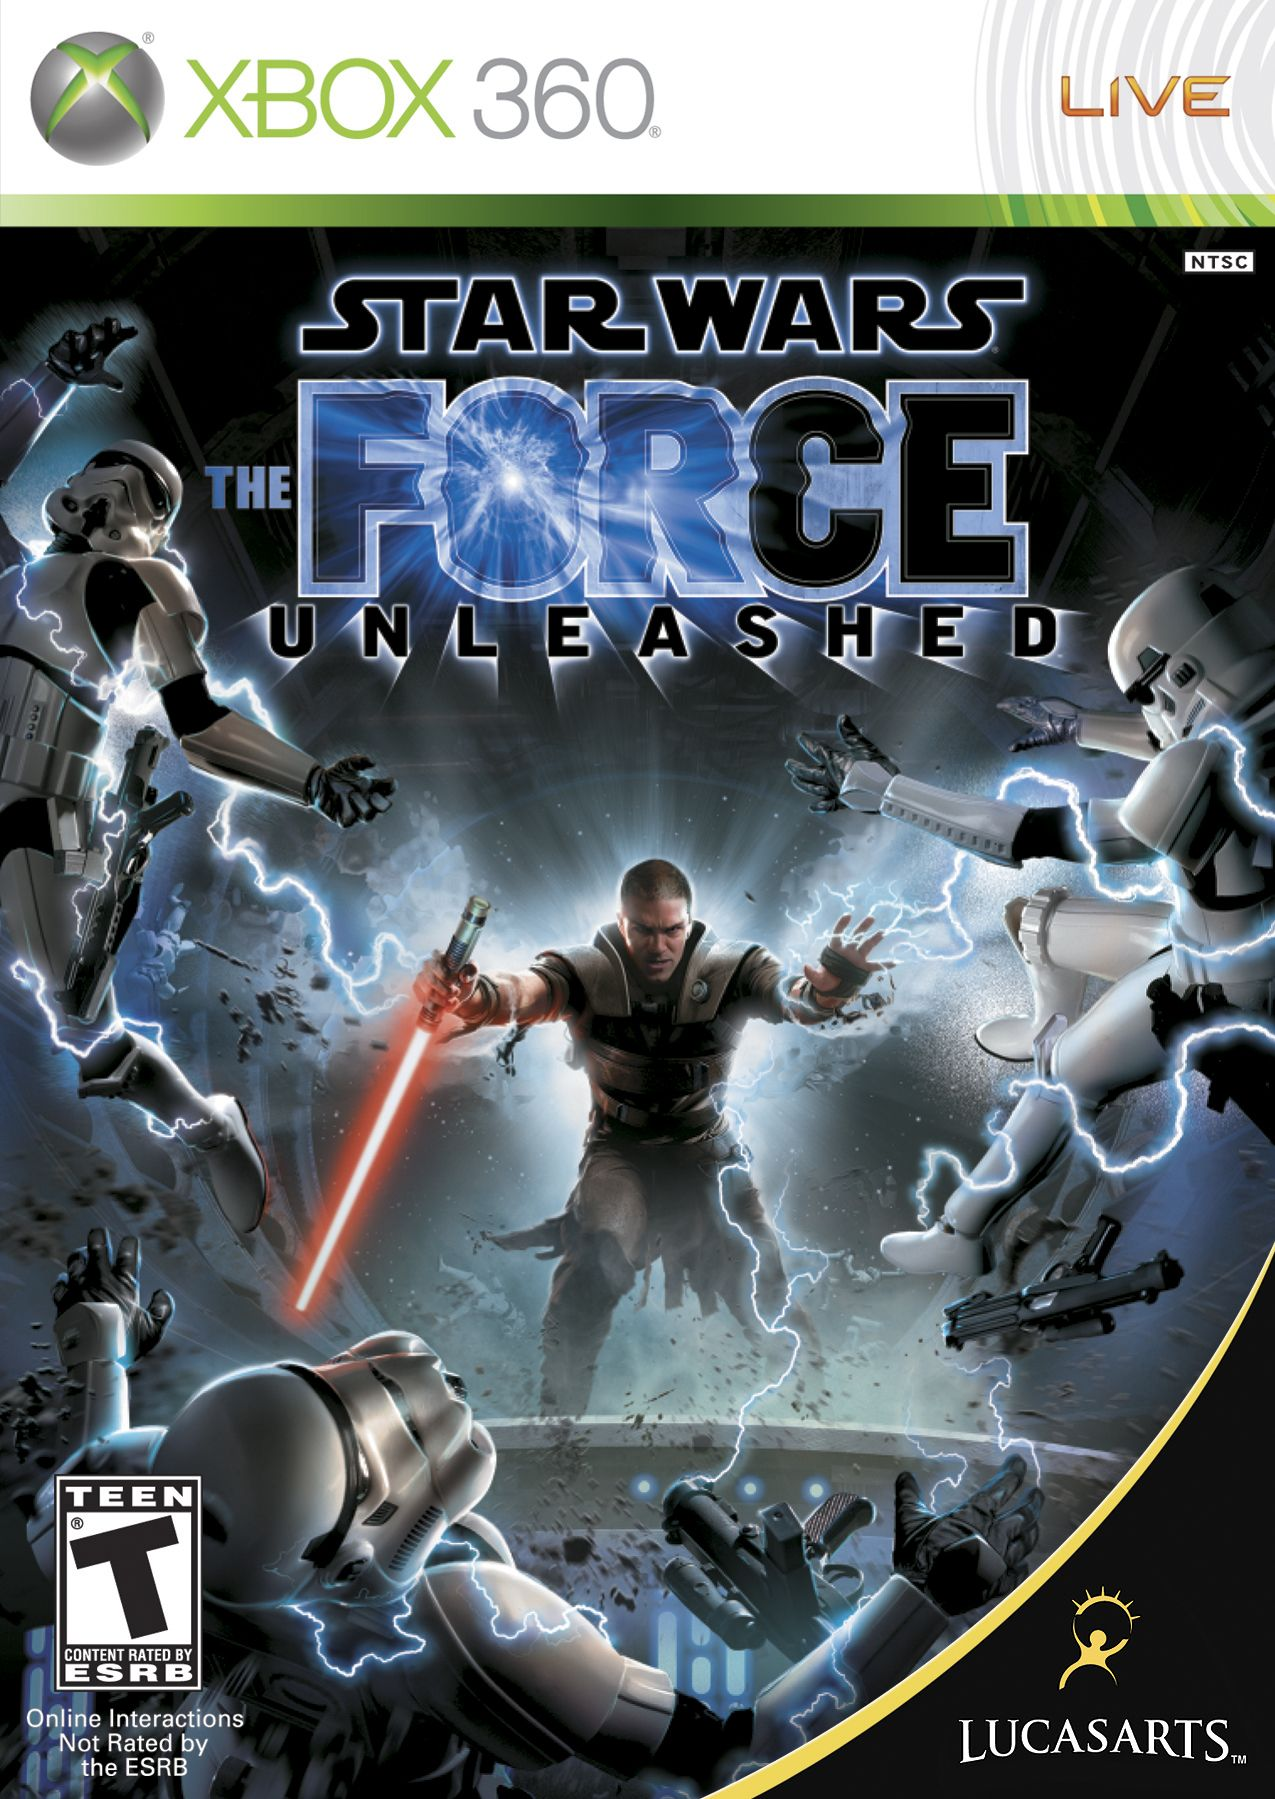 Swtfu Xbox360 Front Jpg 1 275 1 799 Pixels Star Wars Video Games Star Wars Games The Force Unleashed